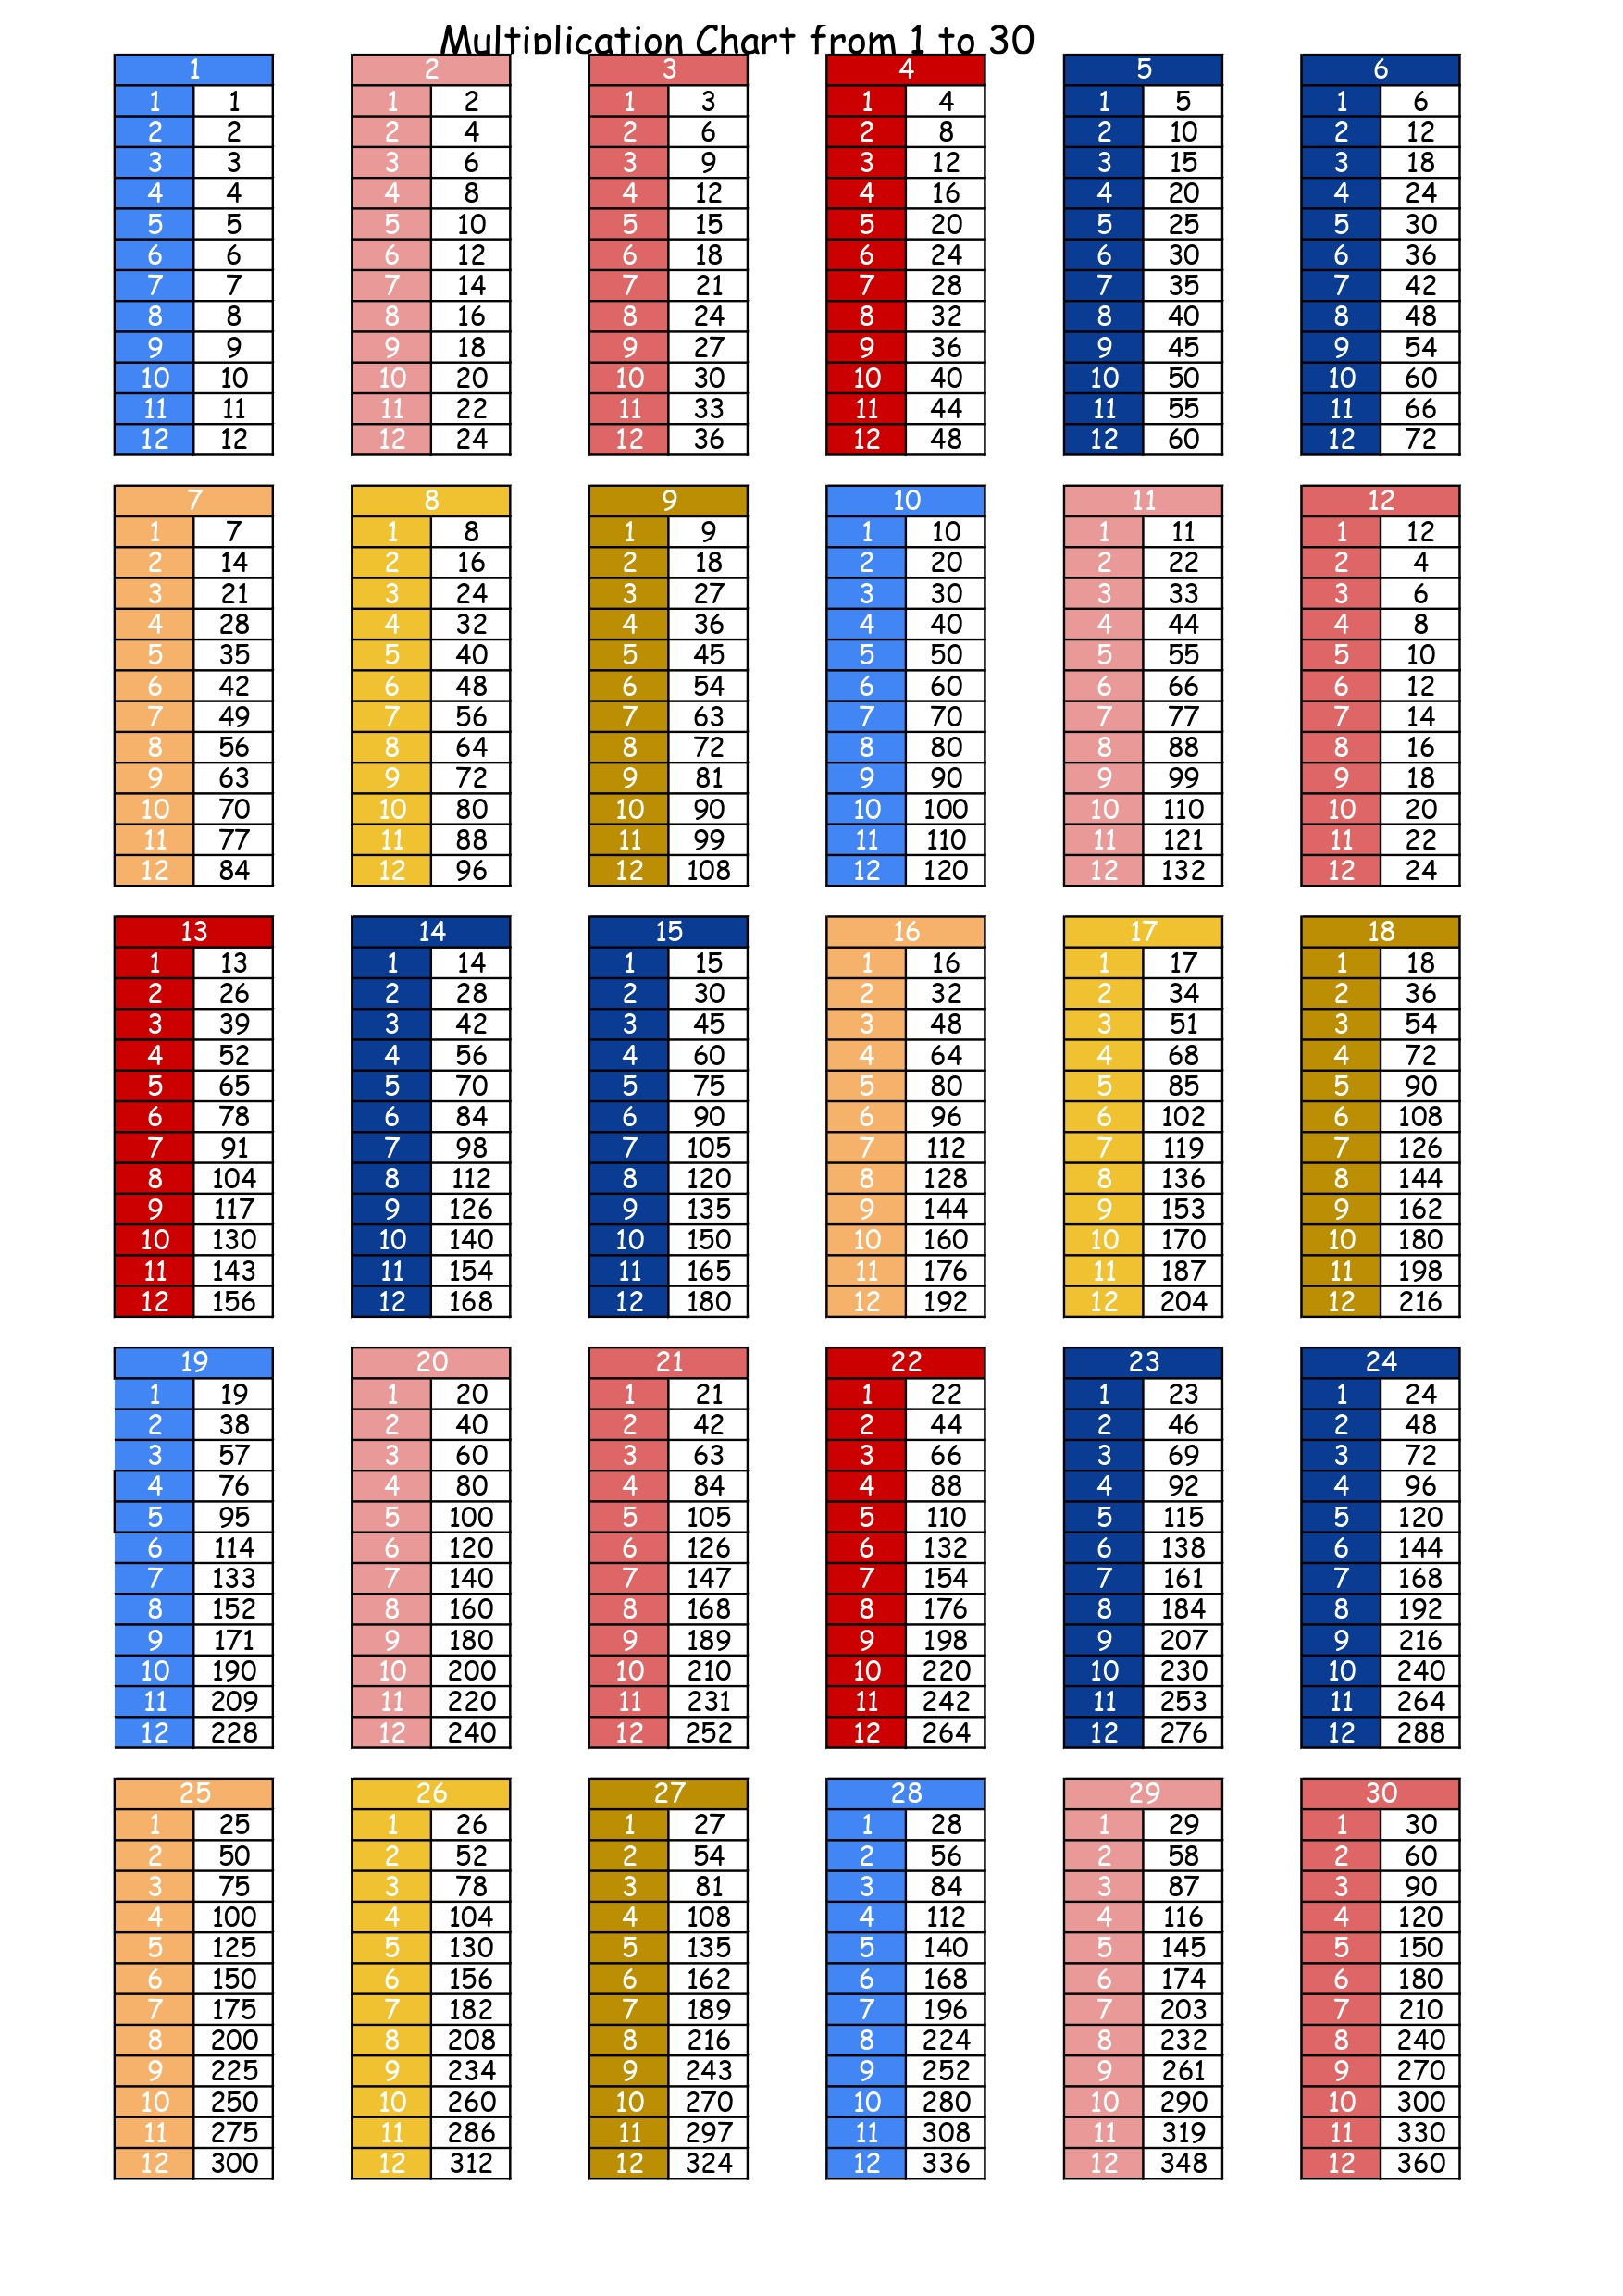 Free Printable Multiplication Tables From 1 To 30